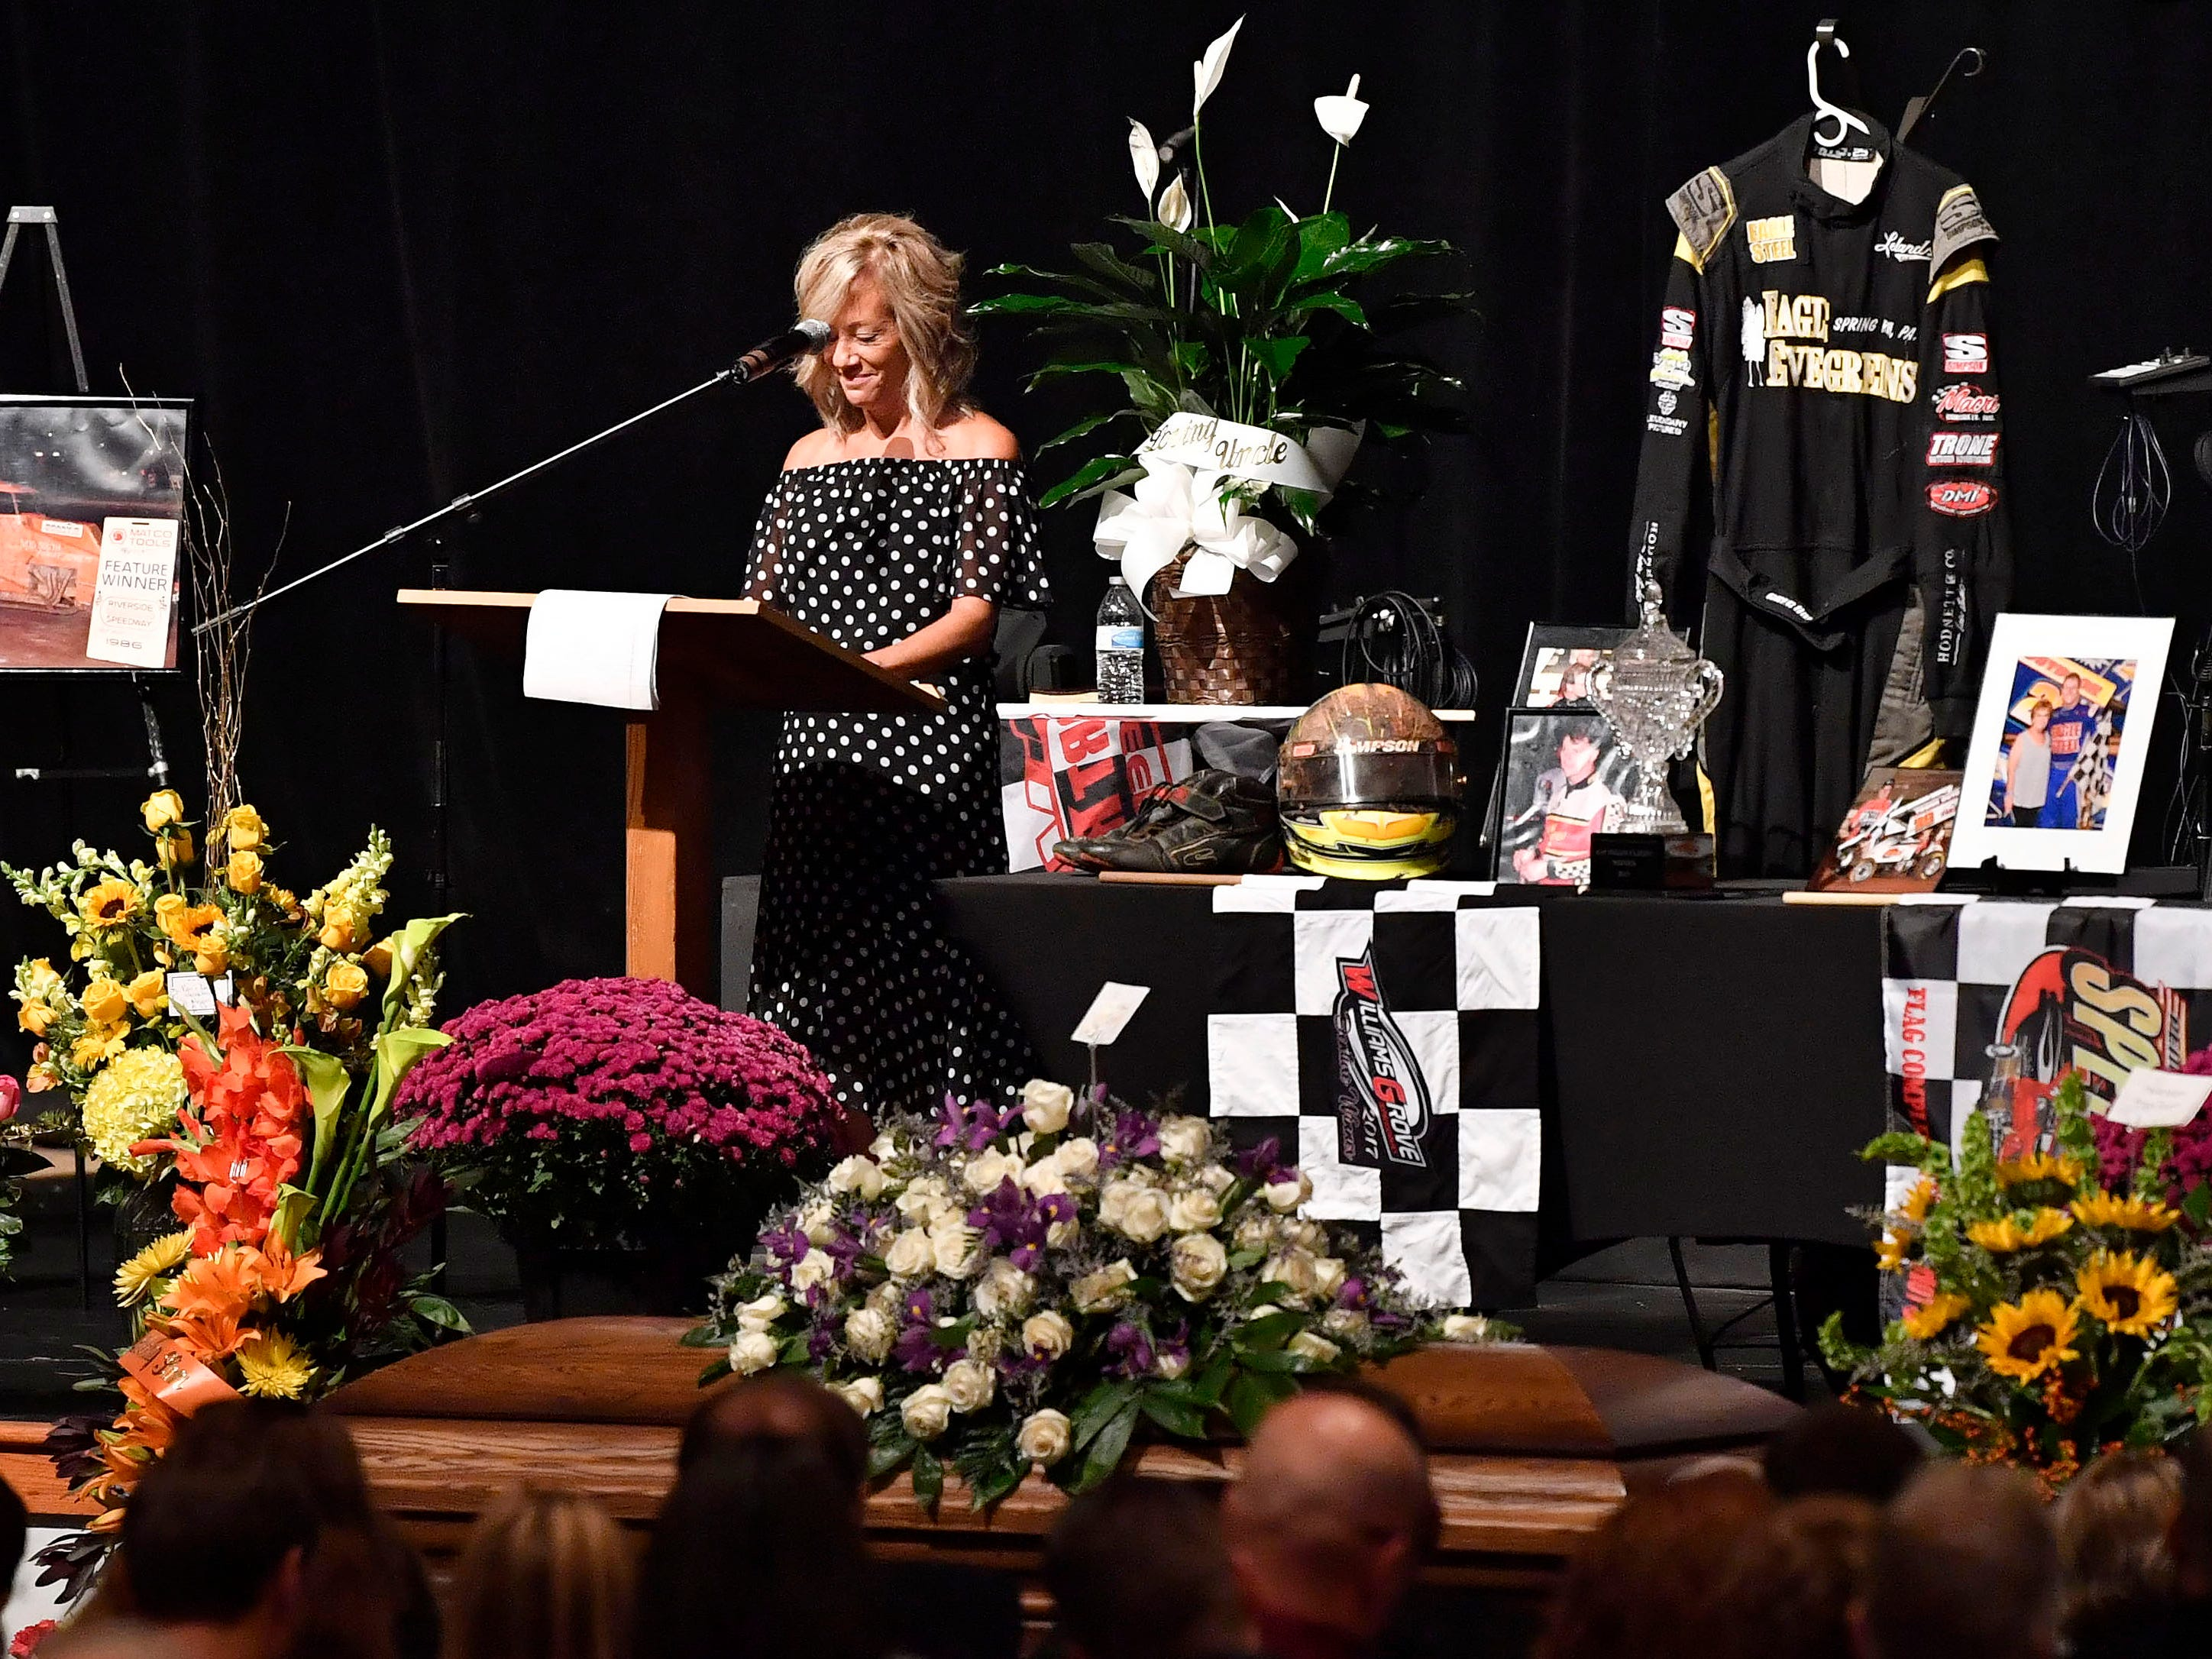 Sherry Hodnett smiles during a somber moment, following her tale of how she and her late husband, Greg Hodnett, fell in love. The sprint-car racer's funeral was held at Grace Fellowship Church on Wednesday. Hodnett, a local racing legend, died on Sept. 20 at BAPS Motor Speedway.